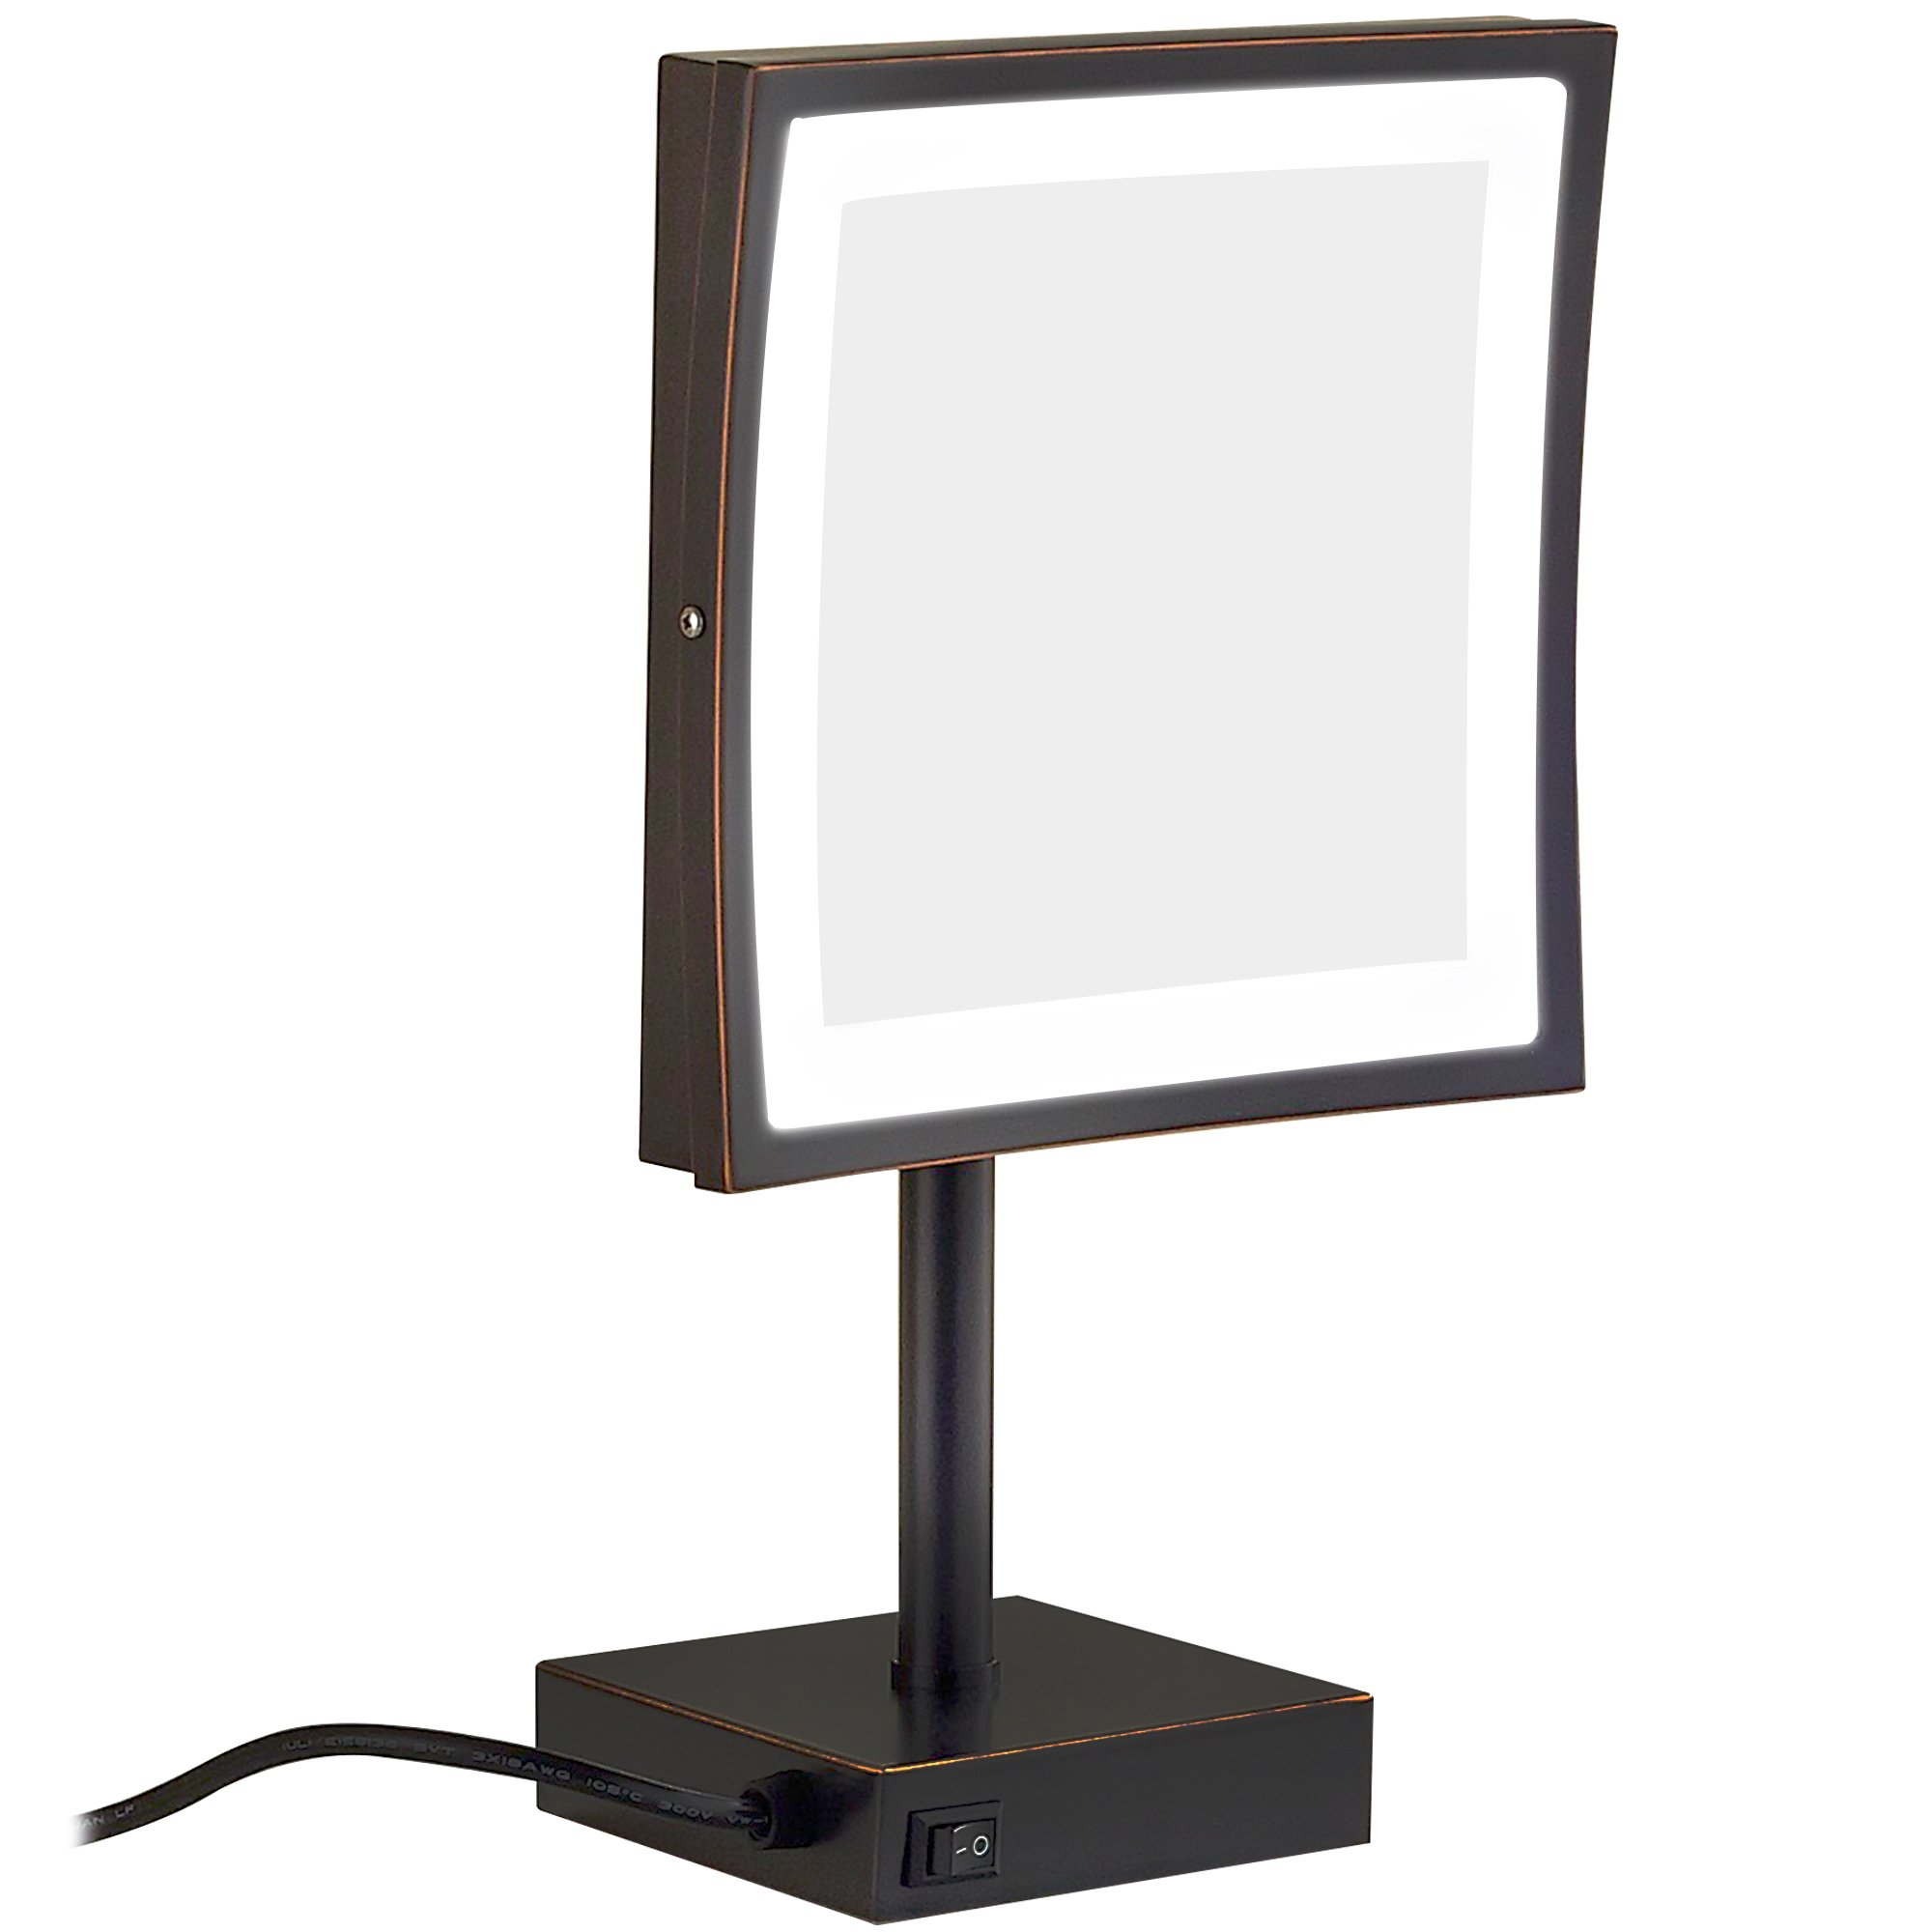 GURUN Square Lighted Vanity Mirror with 3x Magnification,8.5 inch (Oil-Rubbed bronze)